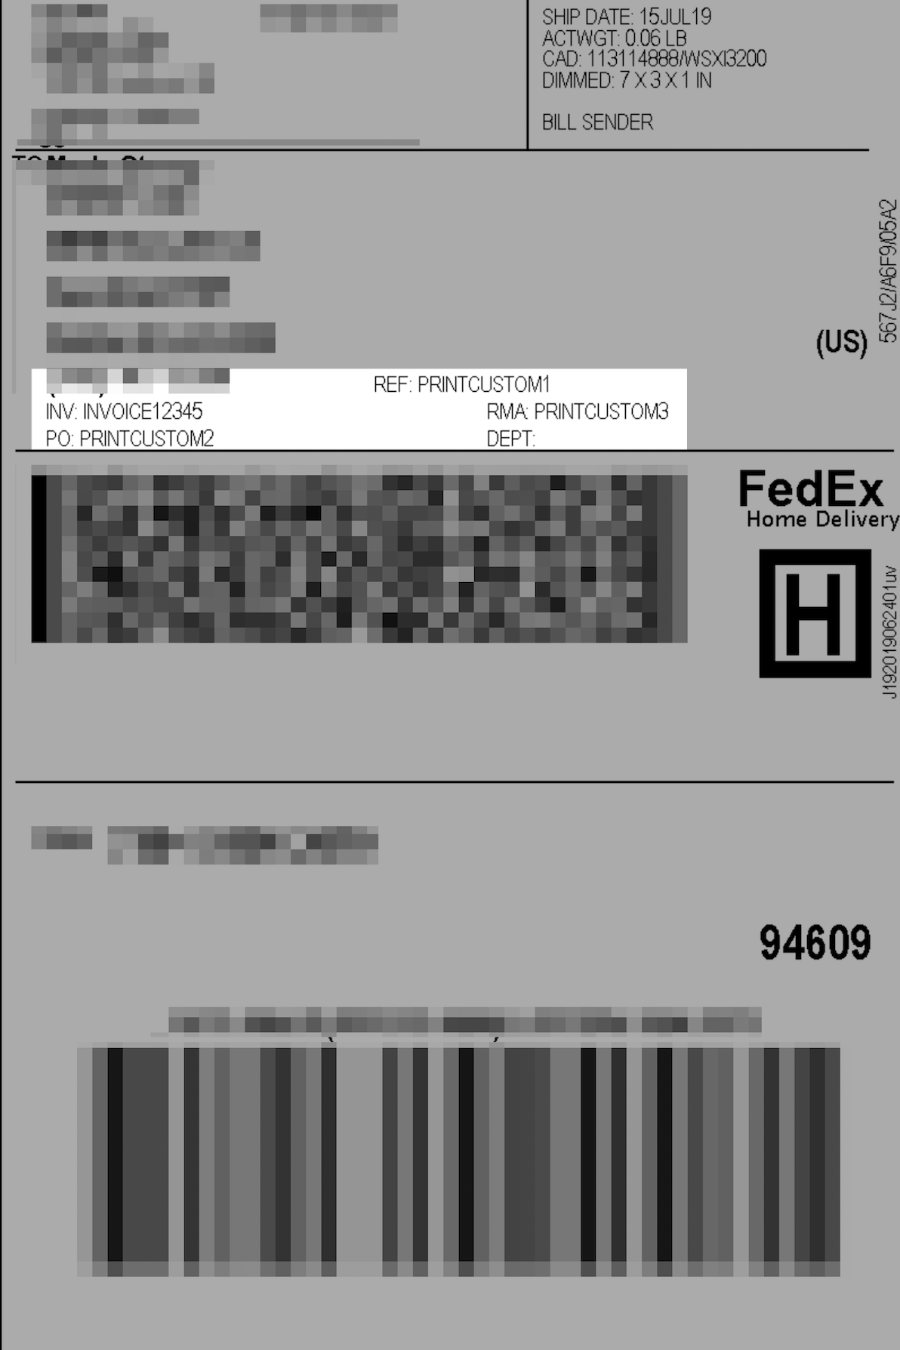 FedEx label custom text options